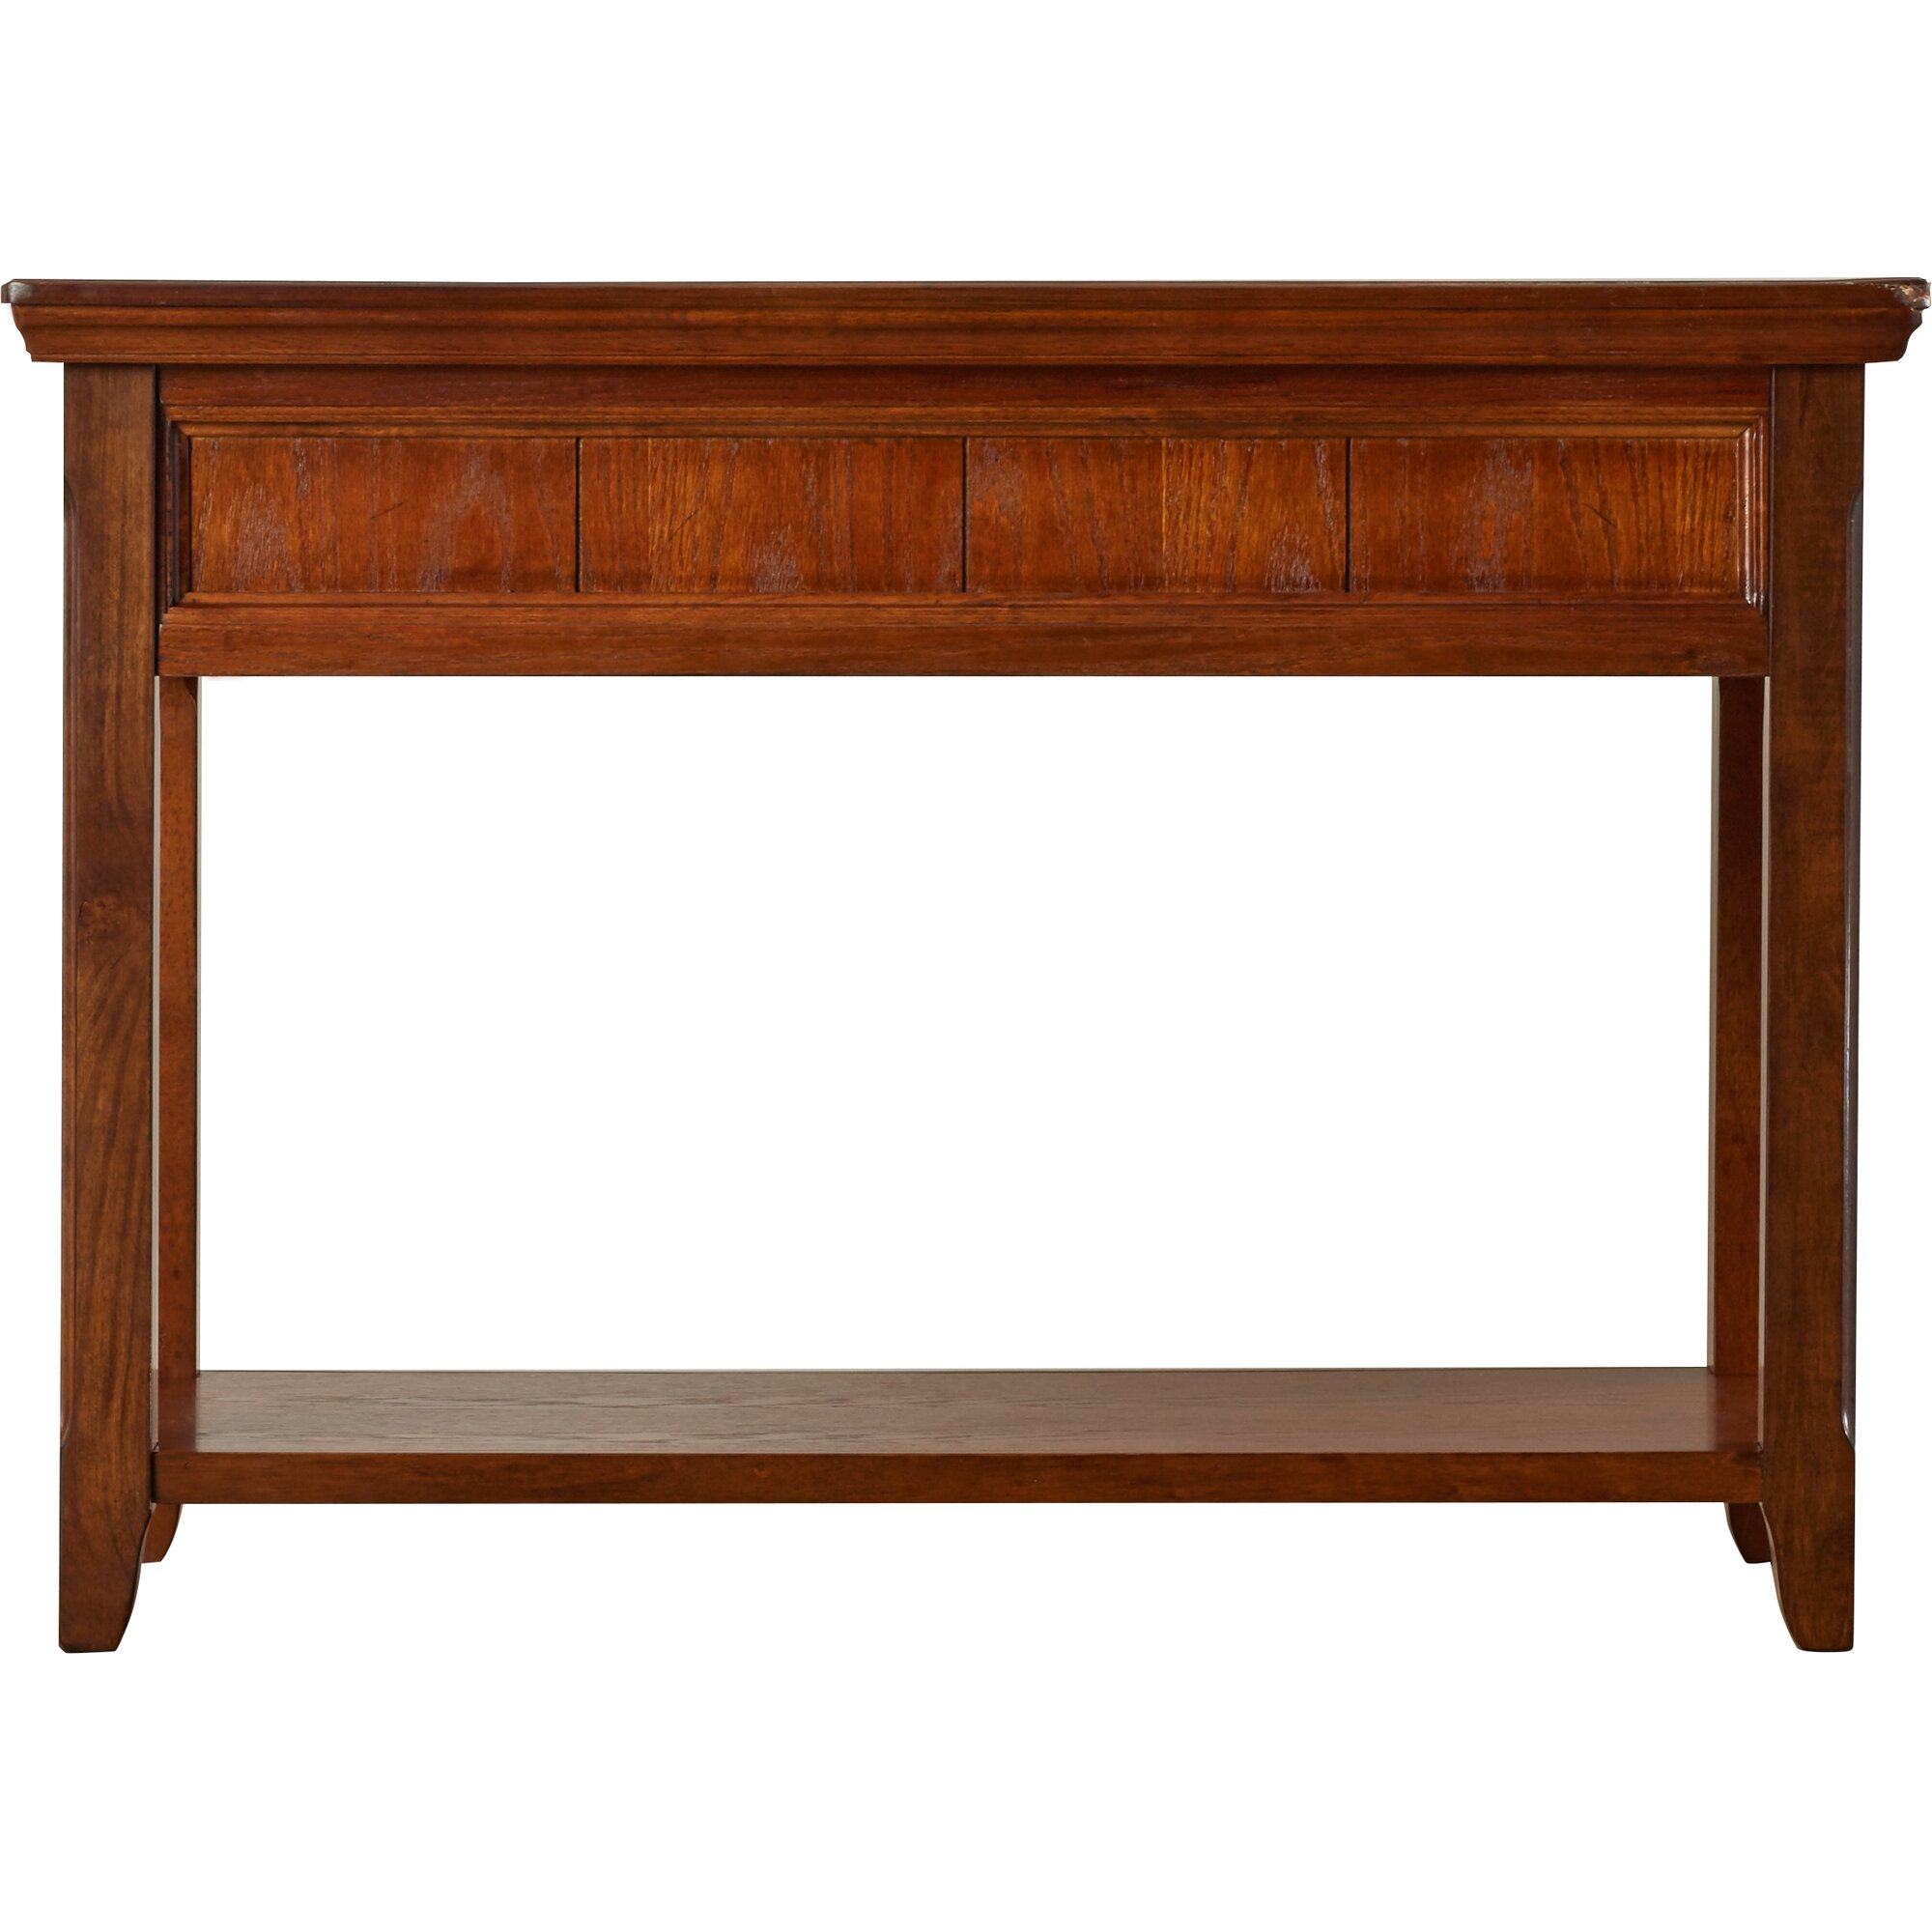 Darby Home Co Mathis Console Table amp Reviews Wayfairca : MathisConsoleTable from www.wayfair.ca size 2000 x 2000 jpeg 223kB